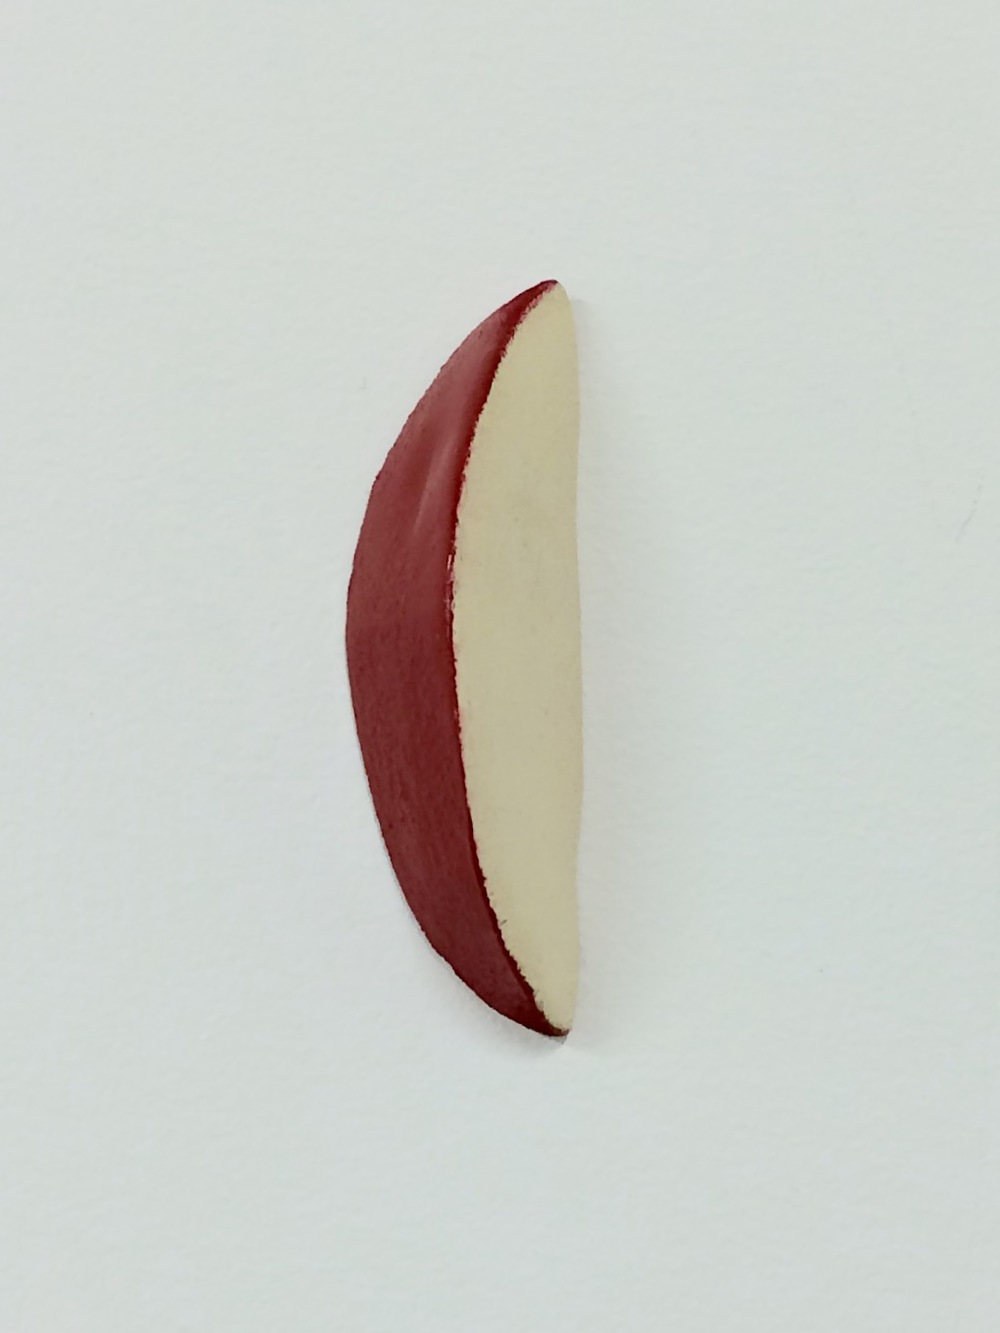 Untitled (apple slice), 2016. Wood, paint, 2.75 x 1 x 1 inches (sold)